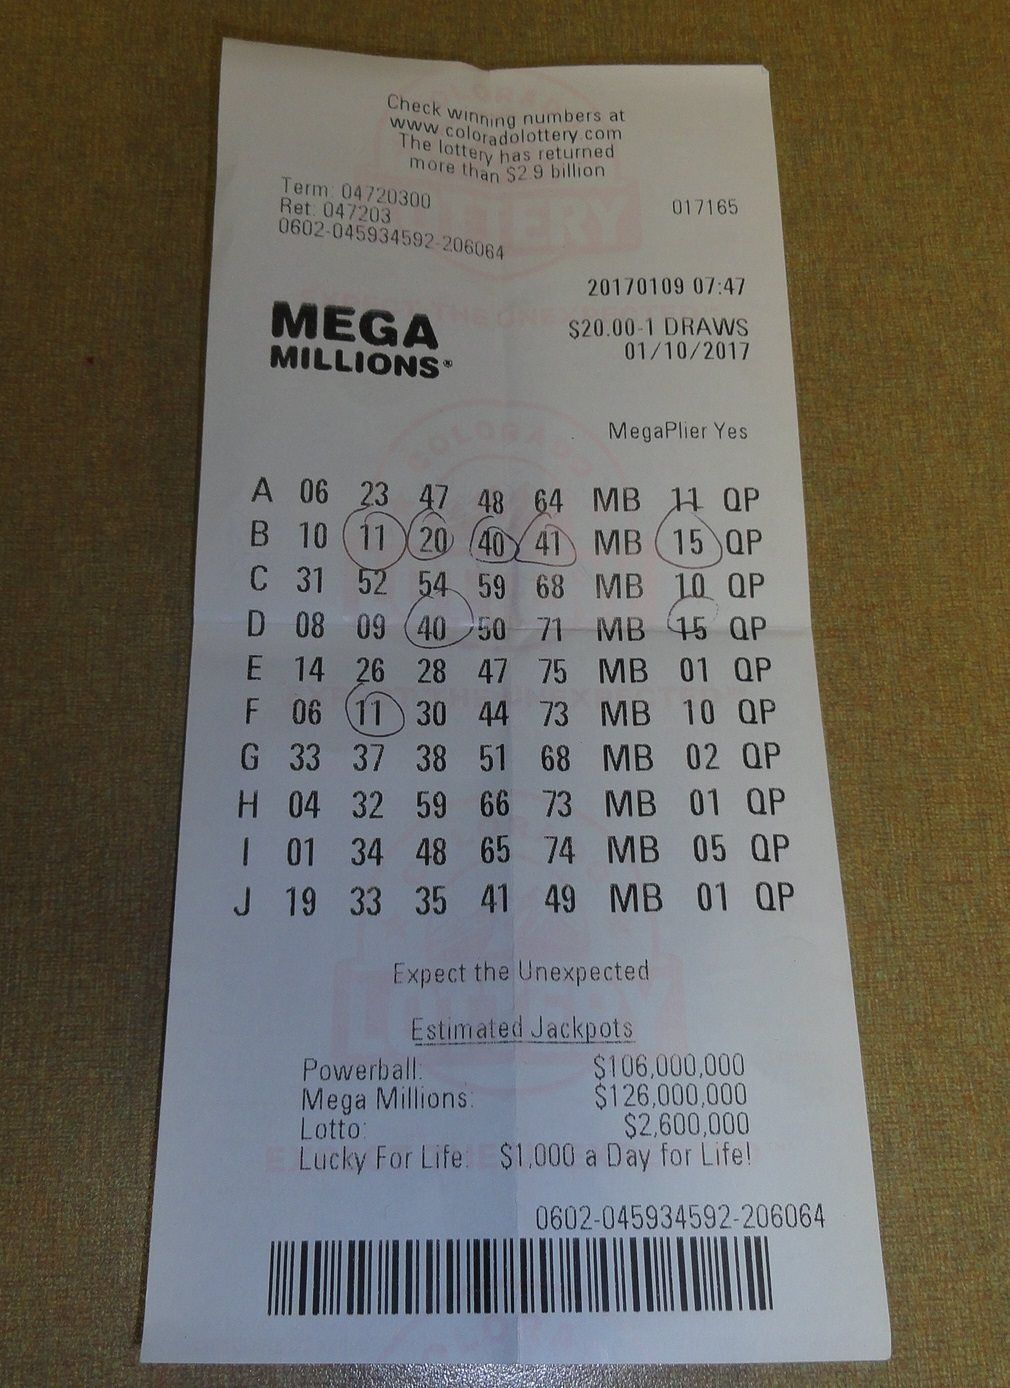 Check Out This Mega Millions Ticket From One Of Our Fort Collins Players It Was For The Jan 10th Drawing And Here S A Winning Numbers 10 Things Fort Collins